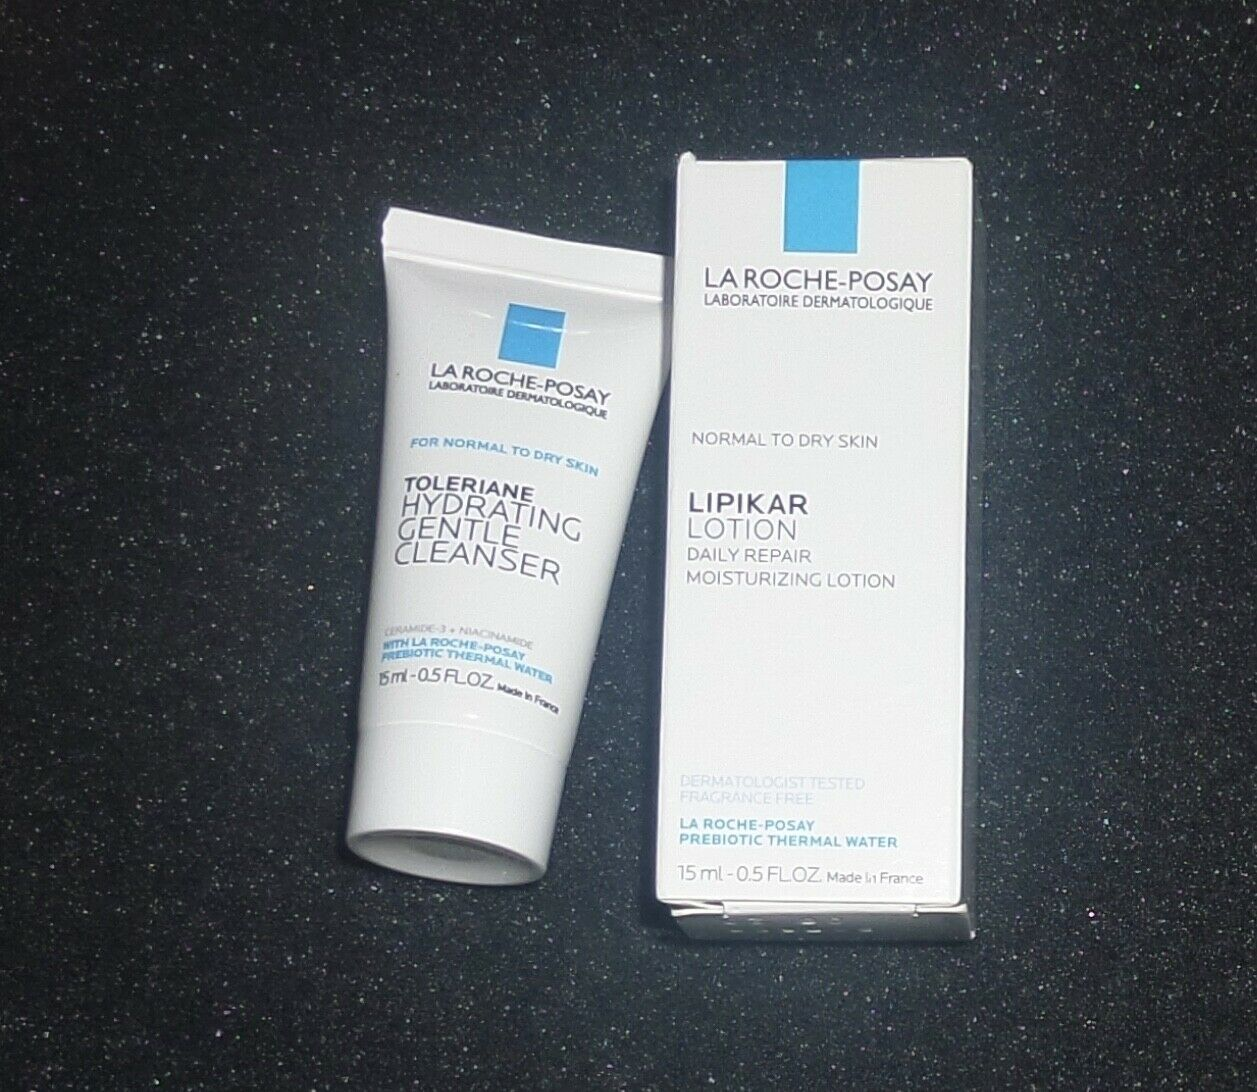 LA Roche-Posay Lipikar Lotion Toleriane Hydrating Gentle Cleanser, Daily Repair  - $7.99